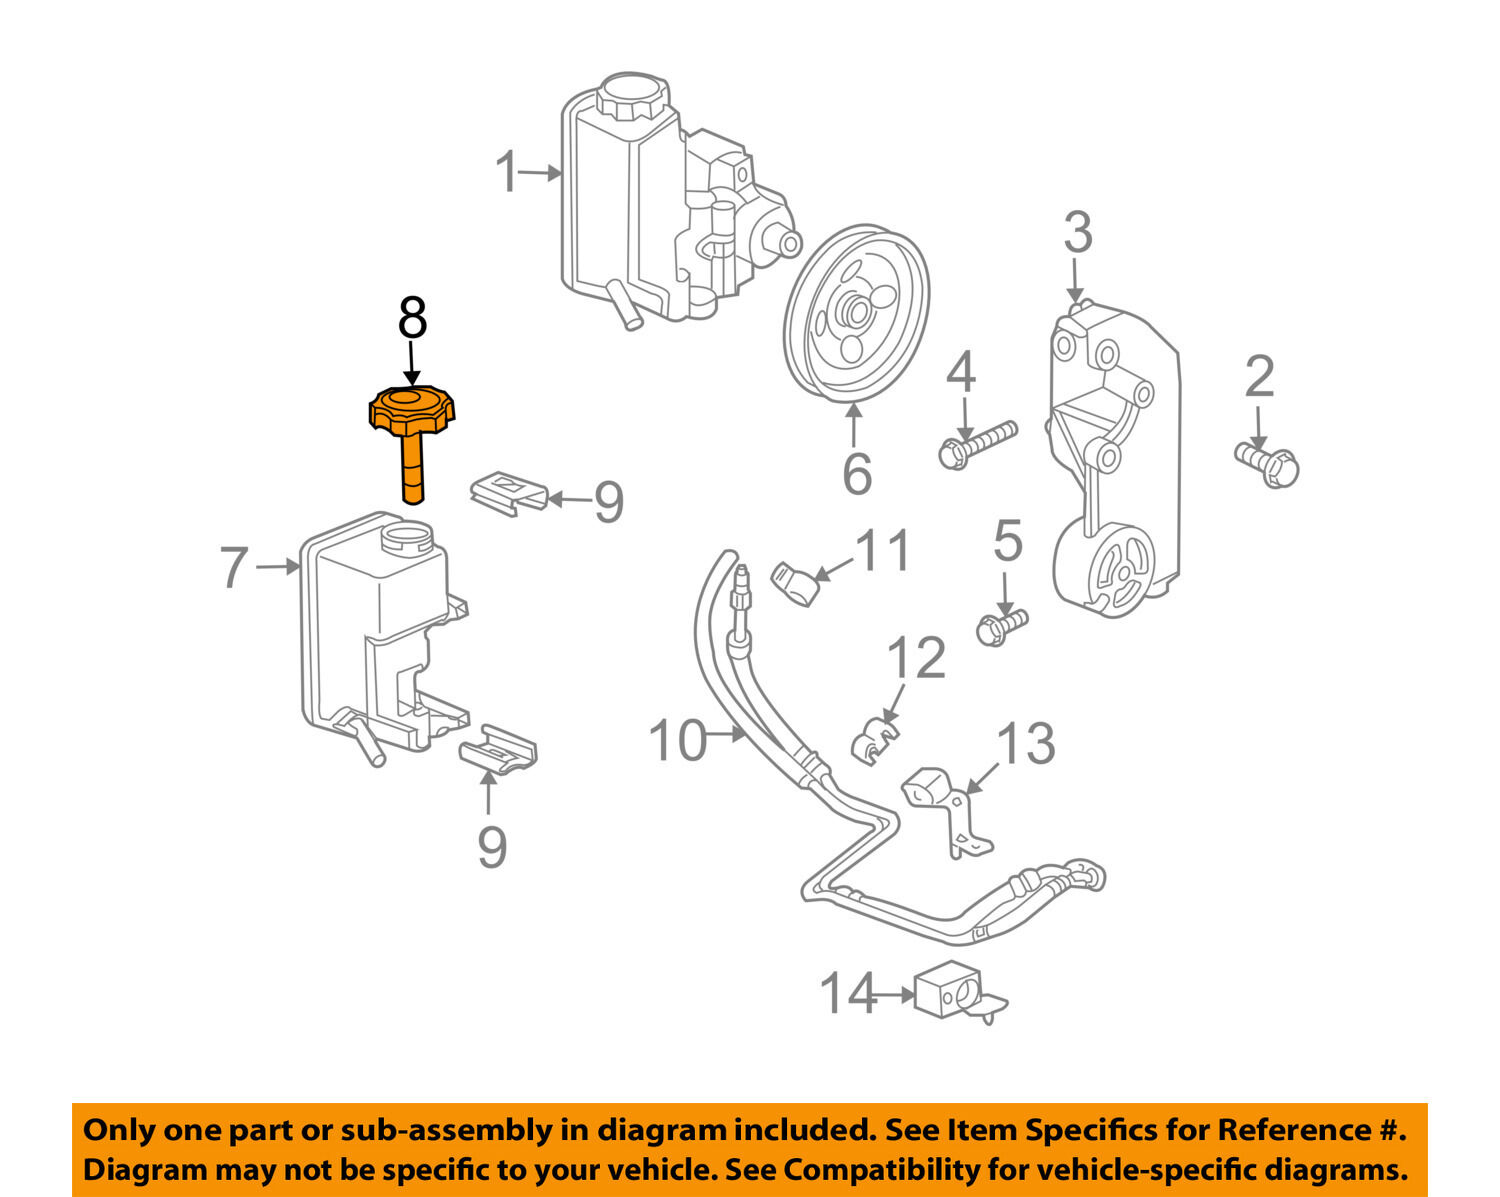 Hummer Gm Oem 06 10 H3 Power Steering Pump Reservoir Tank Cap Fuse Box In Amazon 15132766 1 Of 2only 0 Available